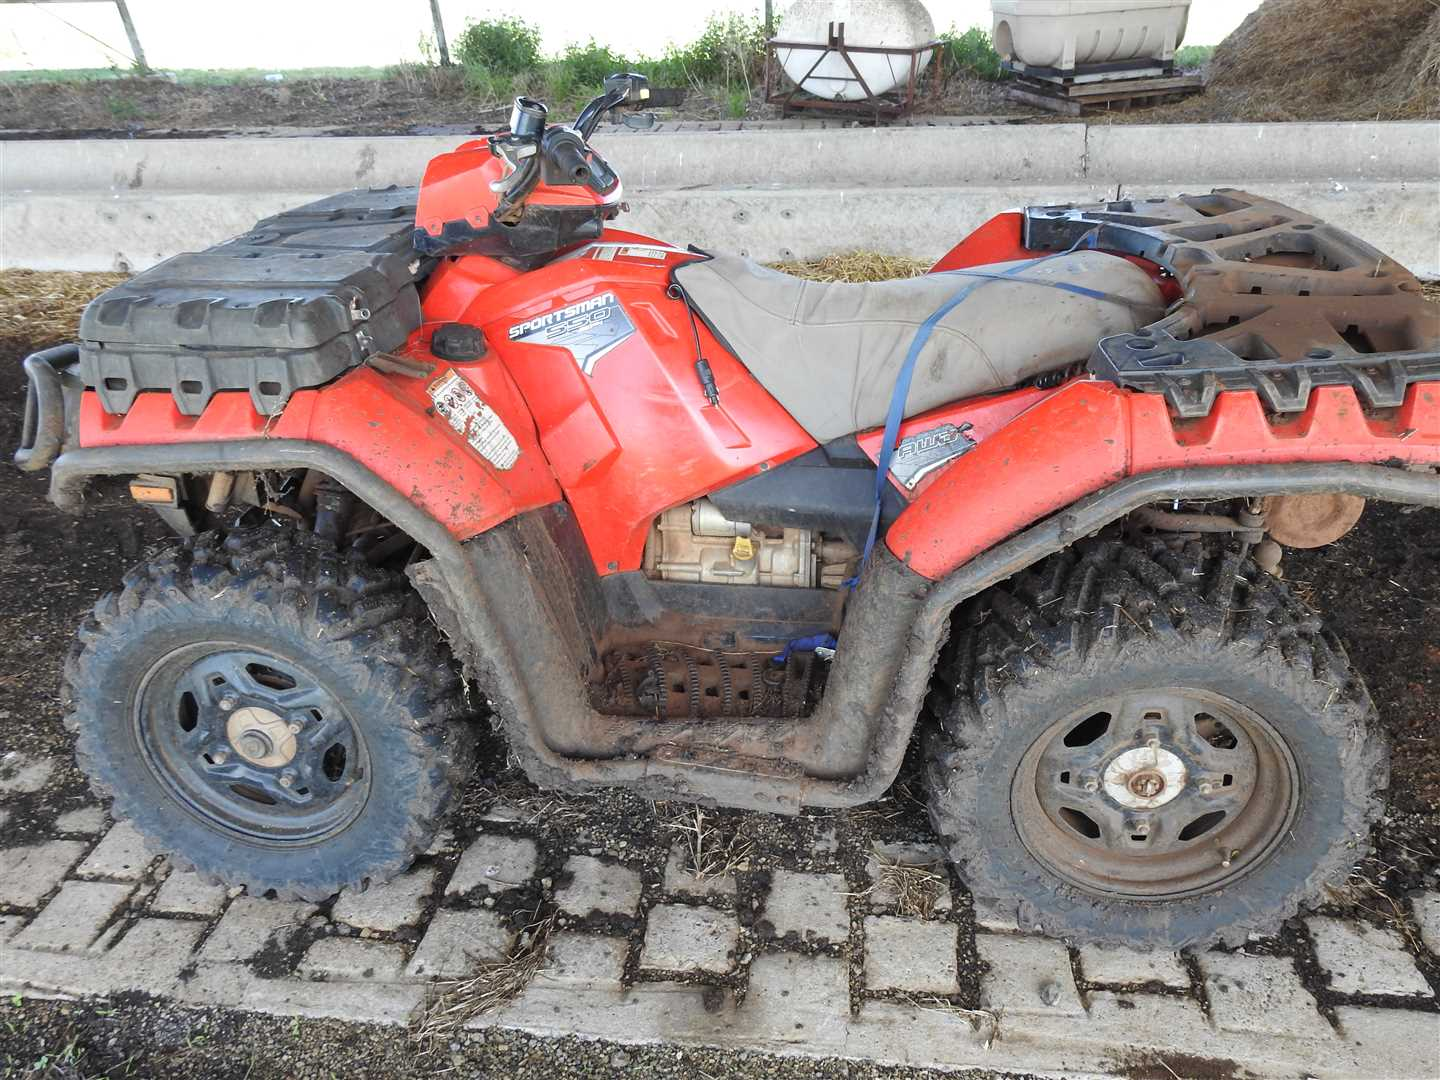 Polaris Sportsmasn 550  4 wheell bike. <1000km, toolbox fitted on front